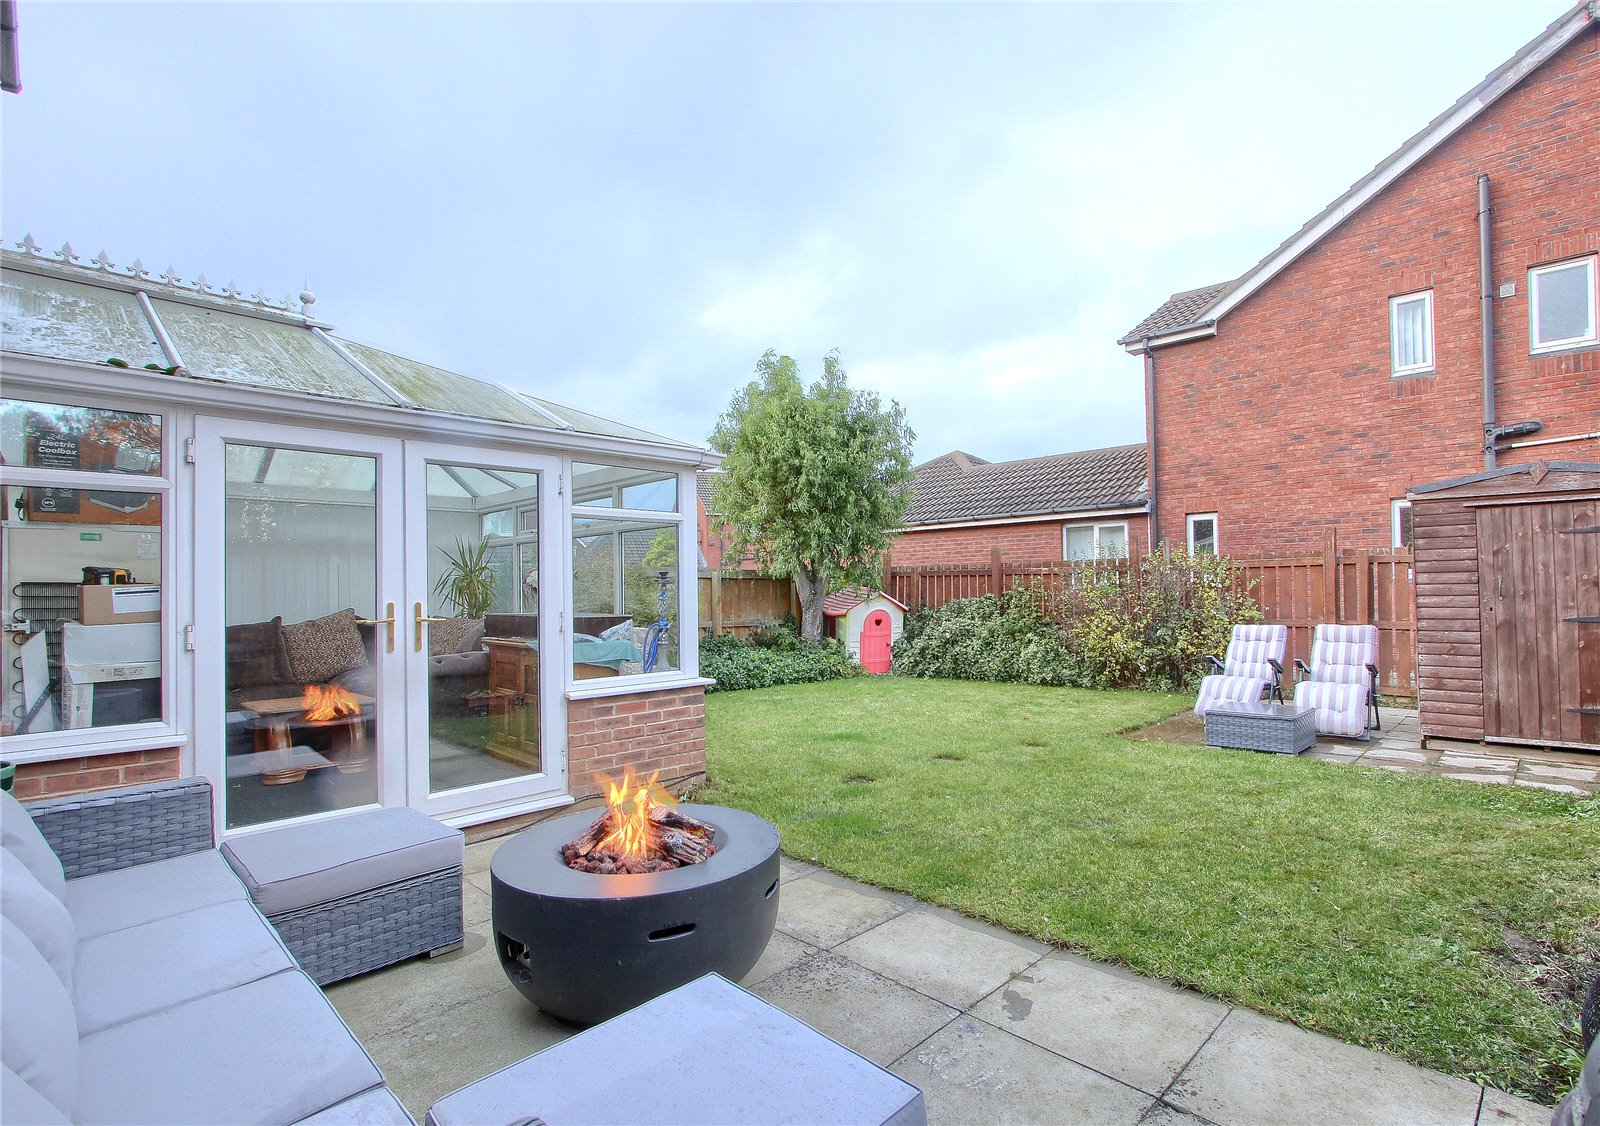 4 bed house for sale in Trevarrian Drive, Redcar  - Property Image 17